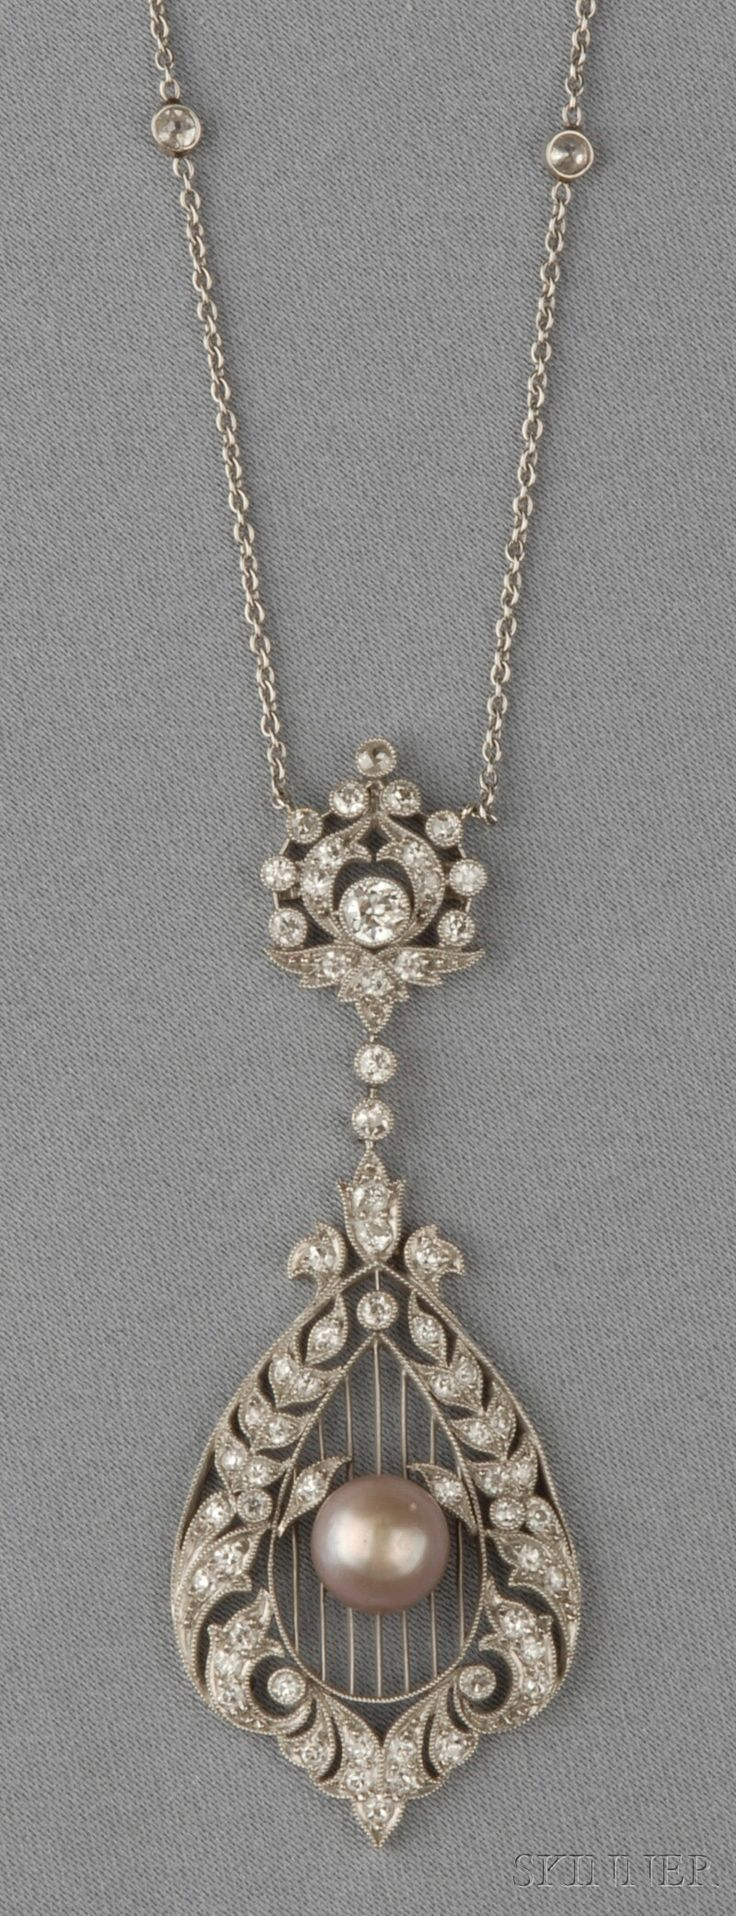 Edwardian Platinum, Natural Pearl, and Diamond Pendant, the pearl measuring approx. 7.50 mm, on knife-edge bars, the frame set with old single and old European-cut diamonds, lg. 2 1/2, suspended from trace-link chain with bezel-set old mine-cut diamonds, lg. 16 1/4 in.